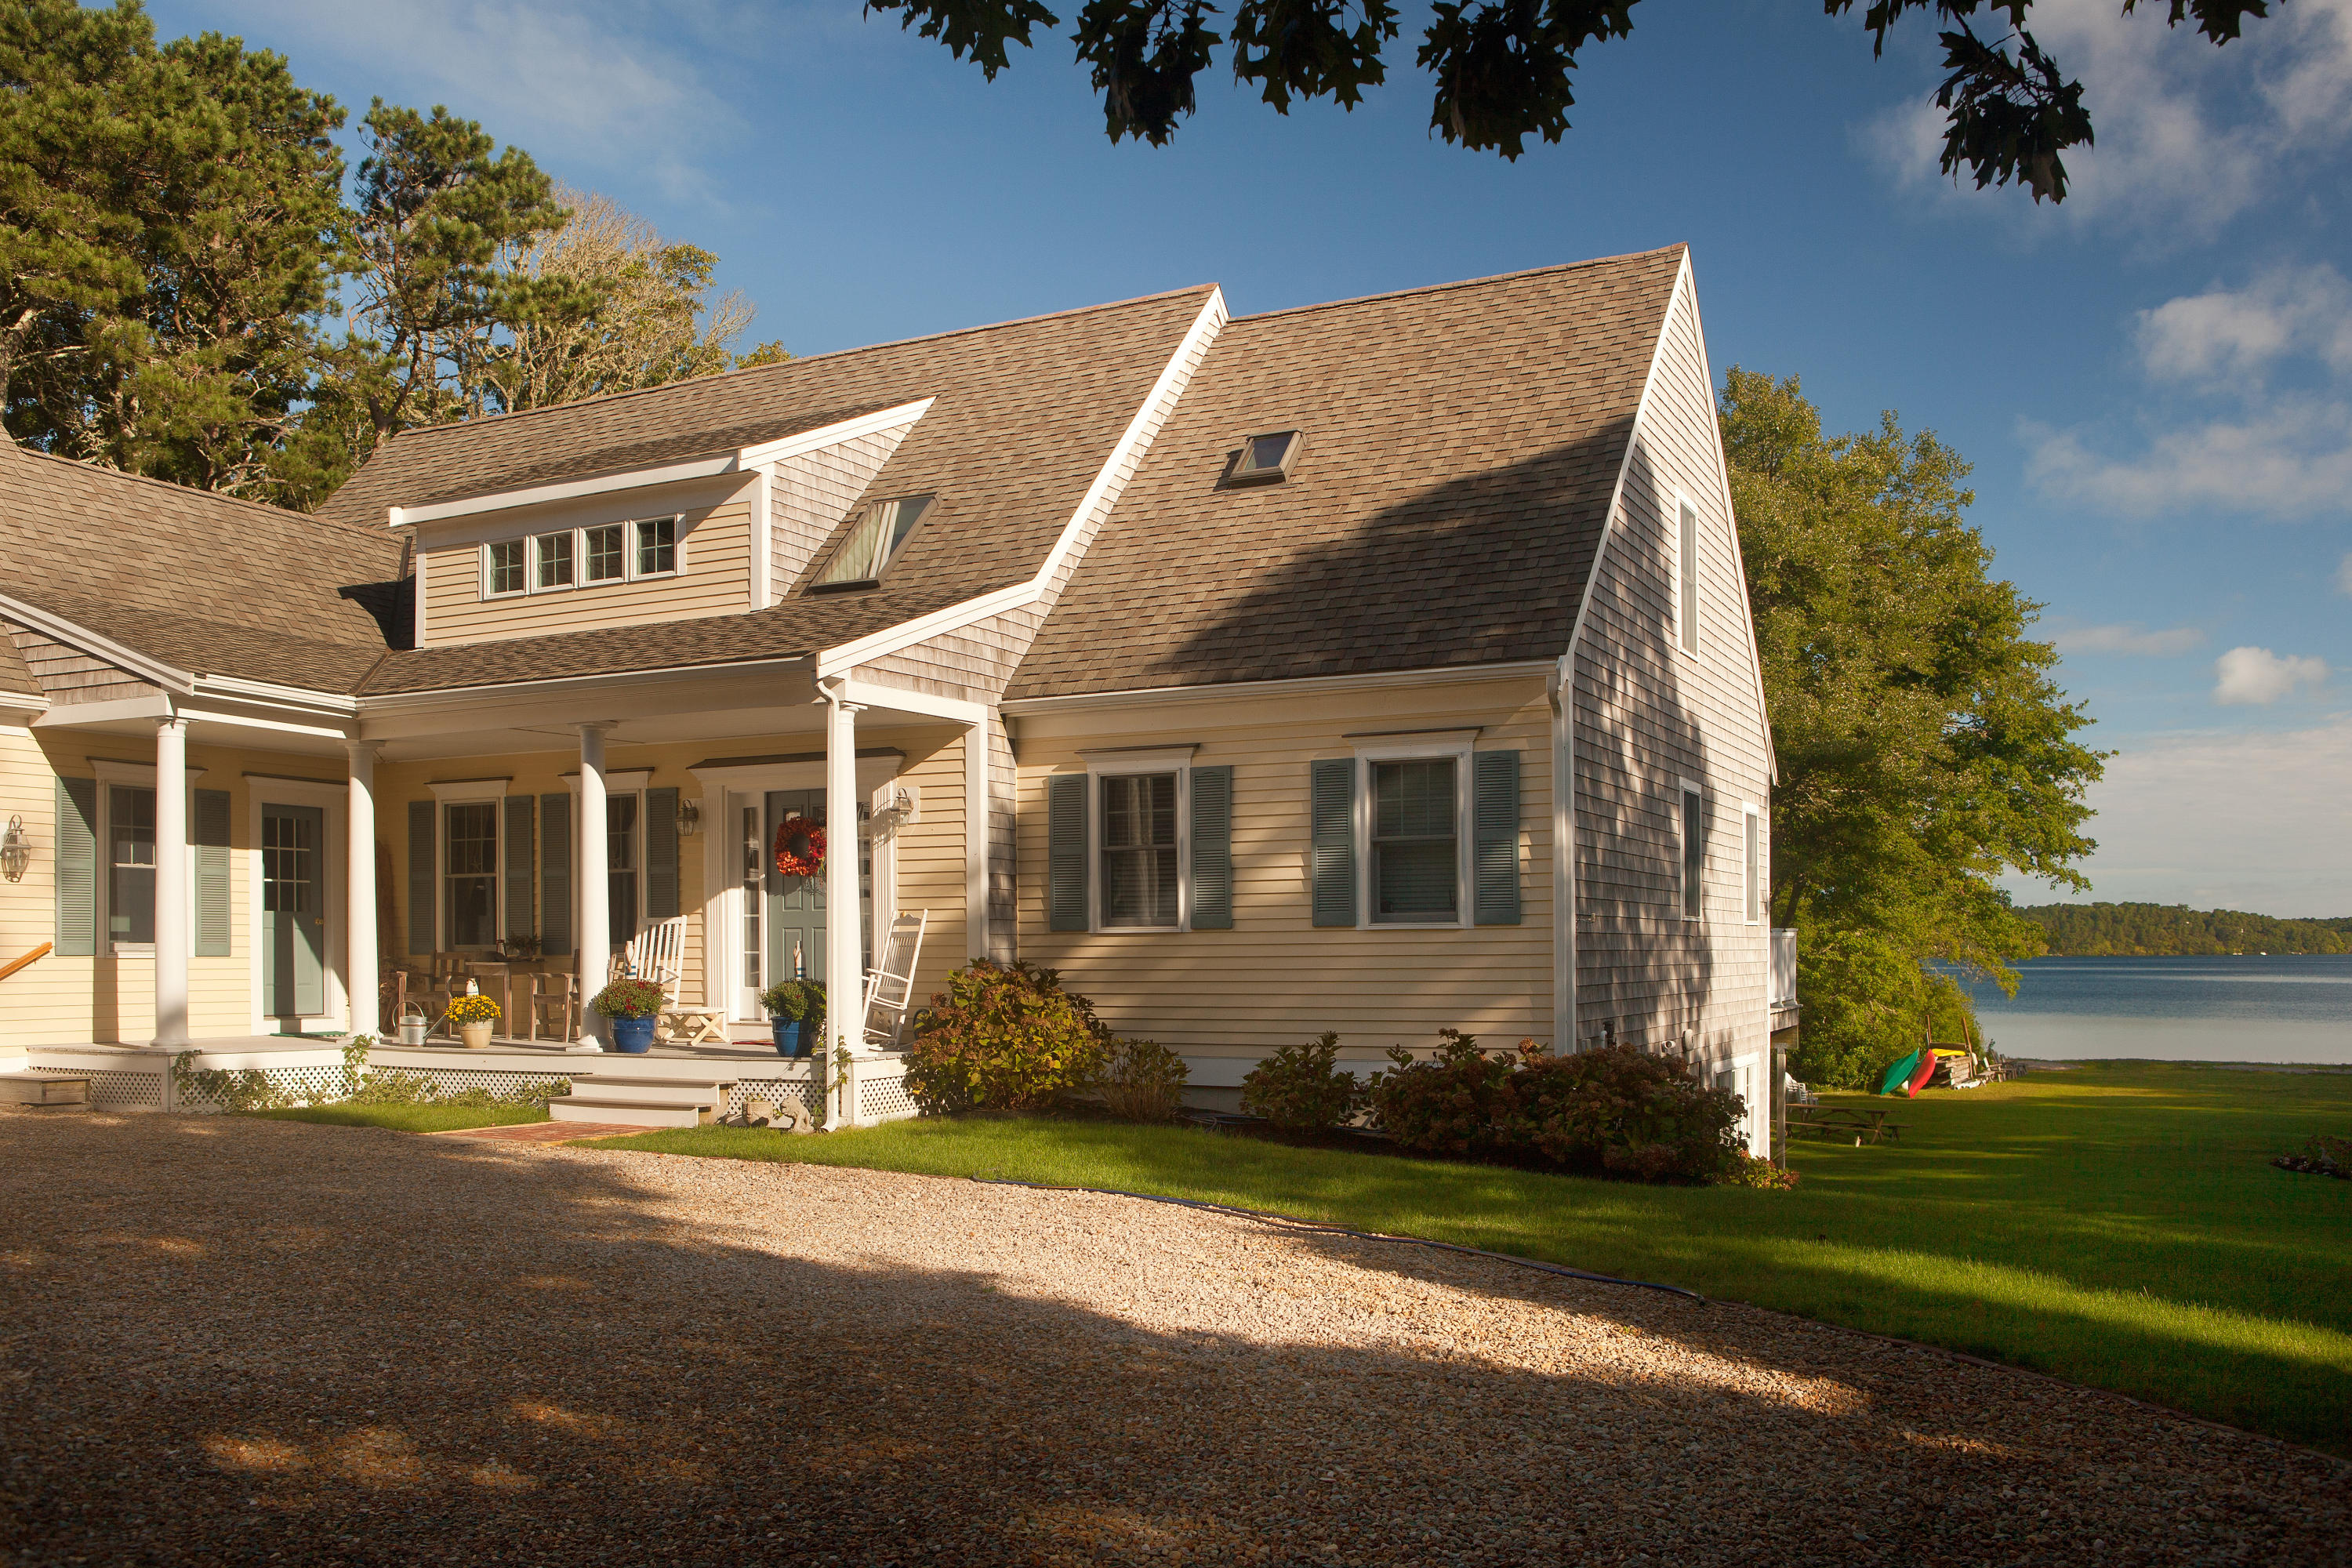 192-long-pond-drive-harwich-ma-02645